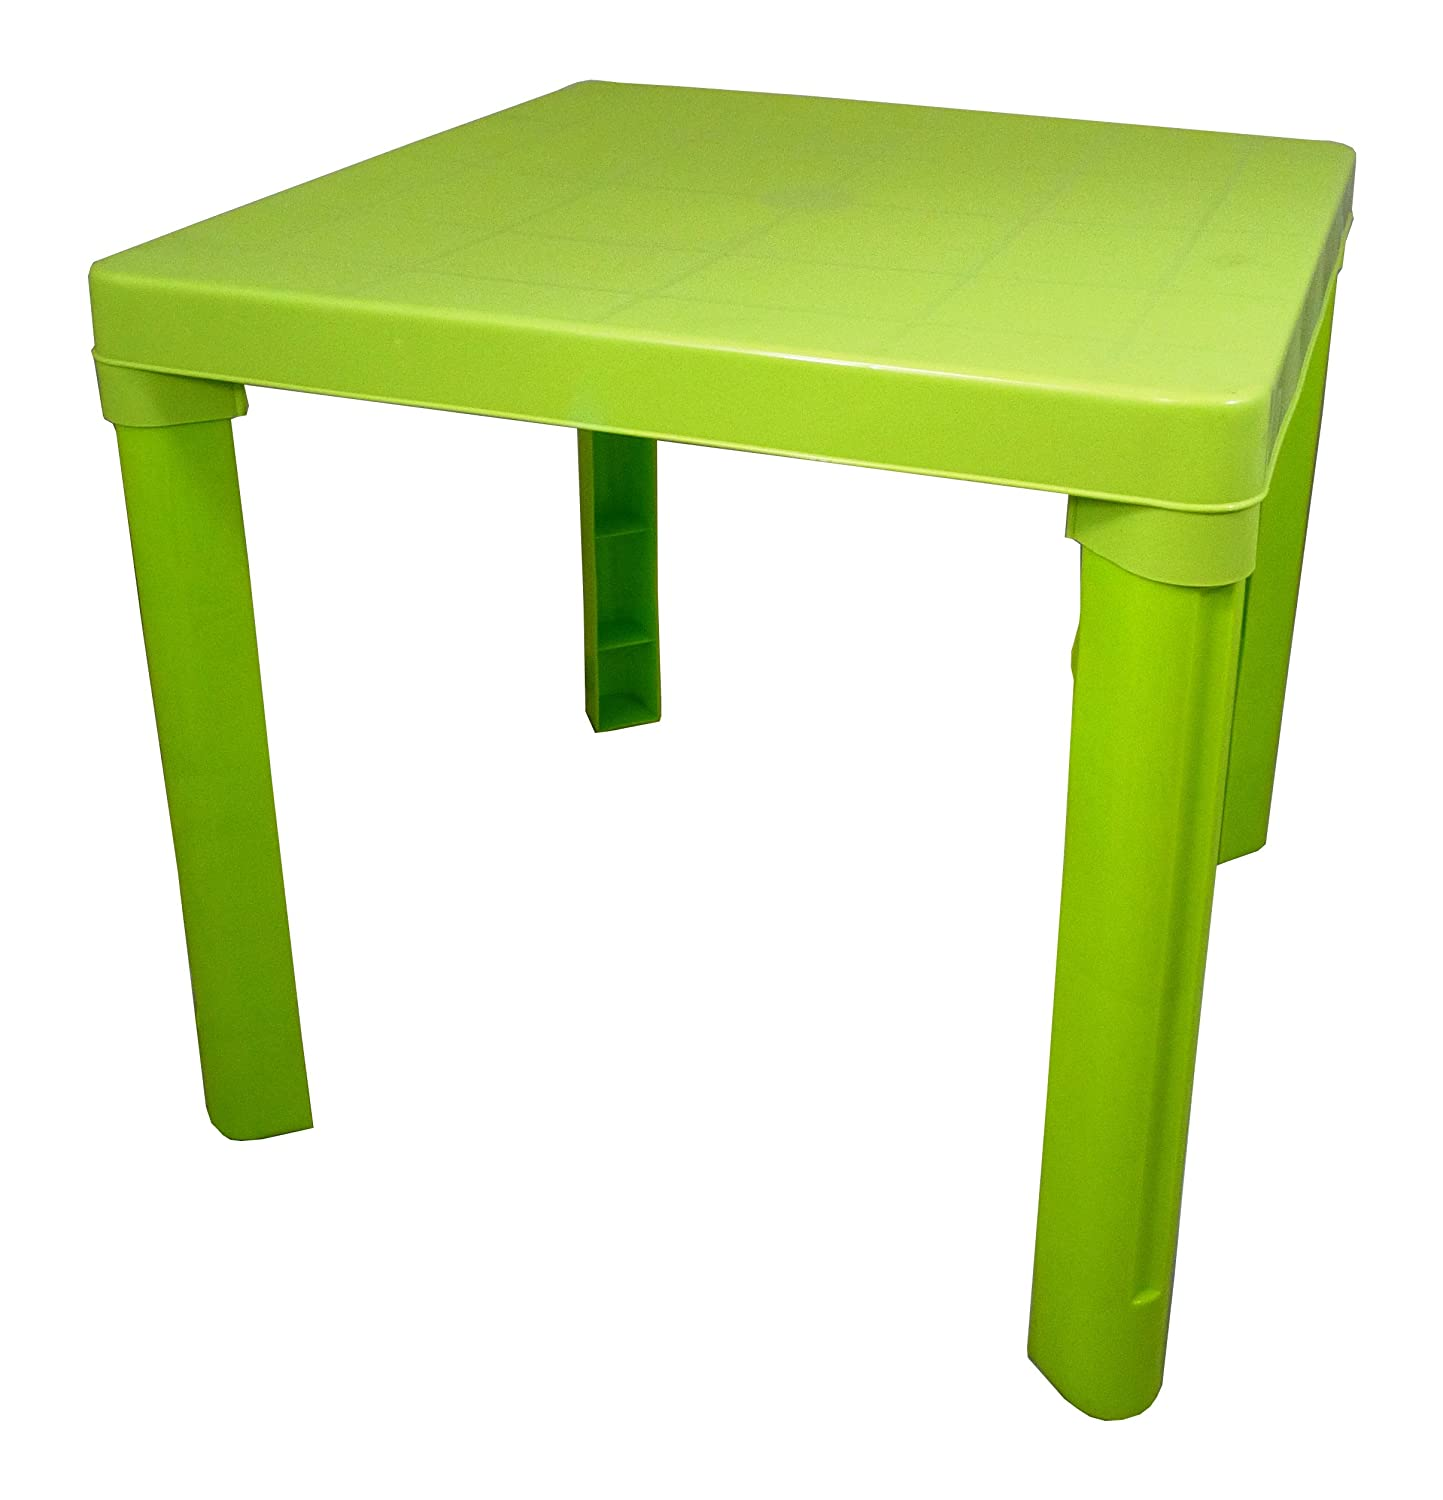 High Quality Green Kids Children Plastic Table Home Garden Picnic